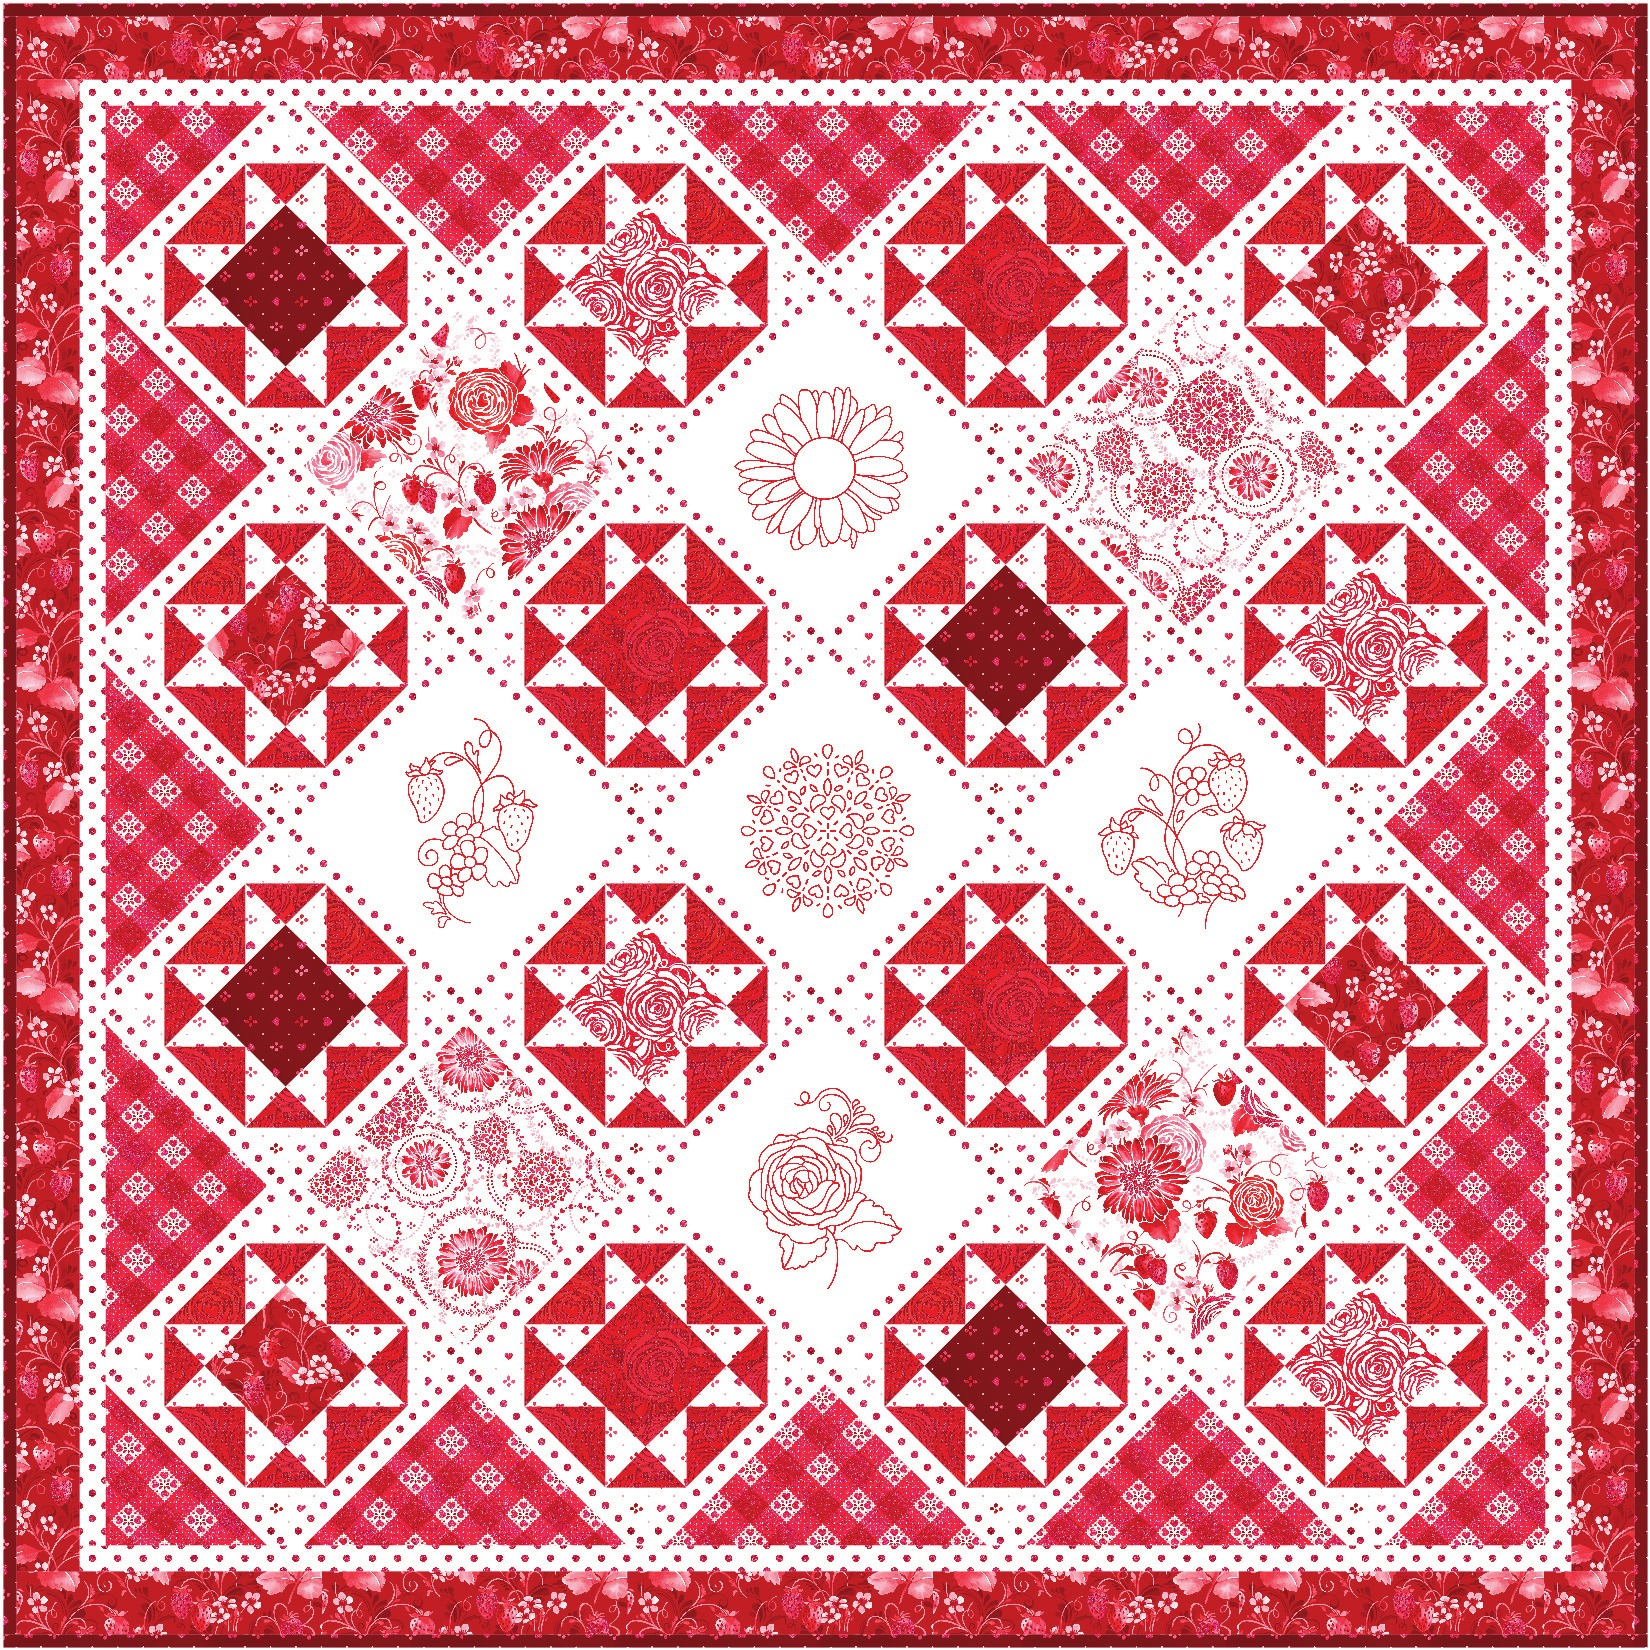 Sugar Crystal Quilt